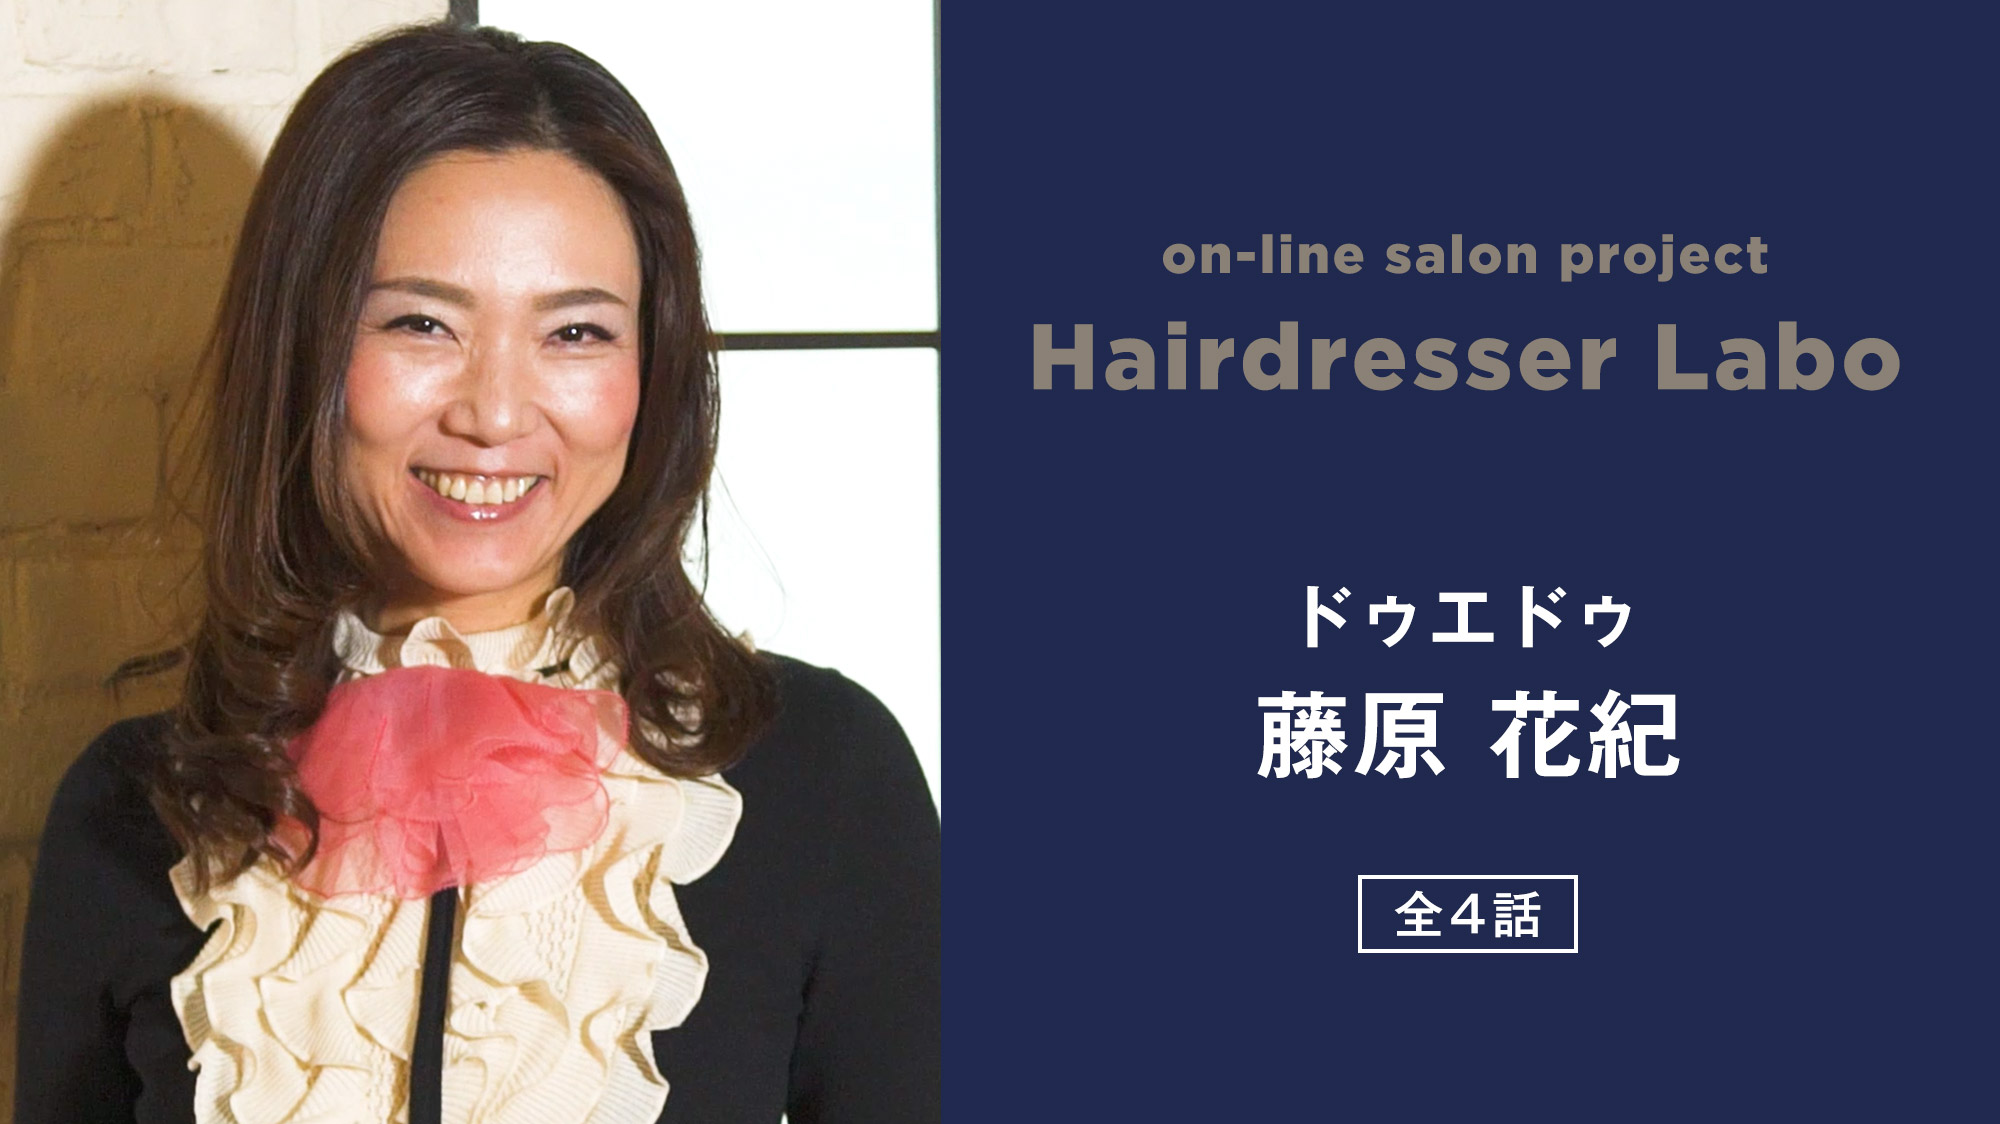 on-line salon project Hairdresser Labo『藤原 花紀』 全4話